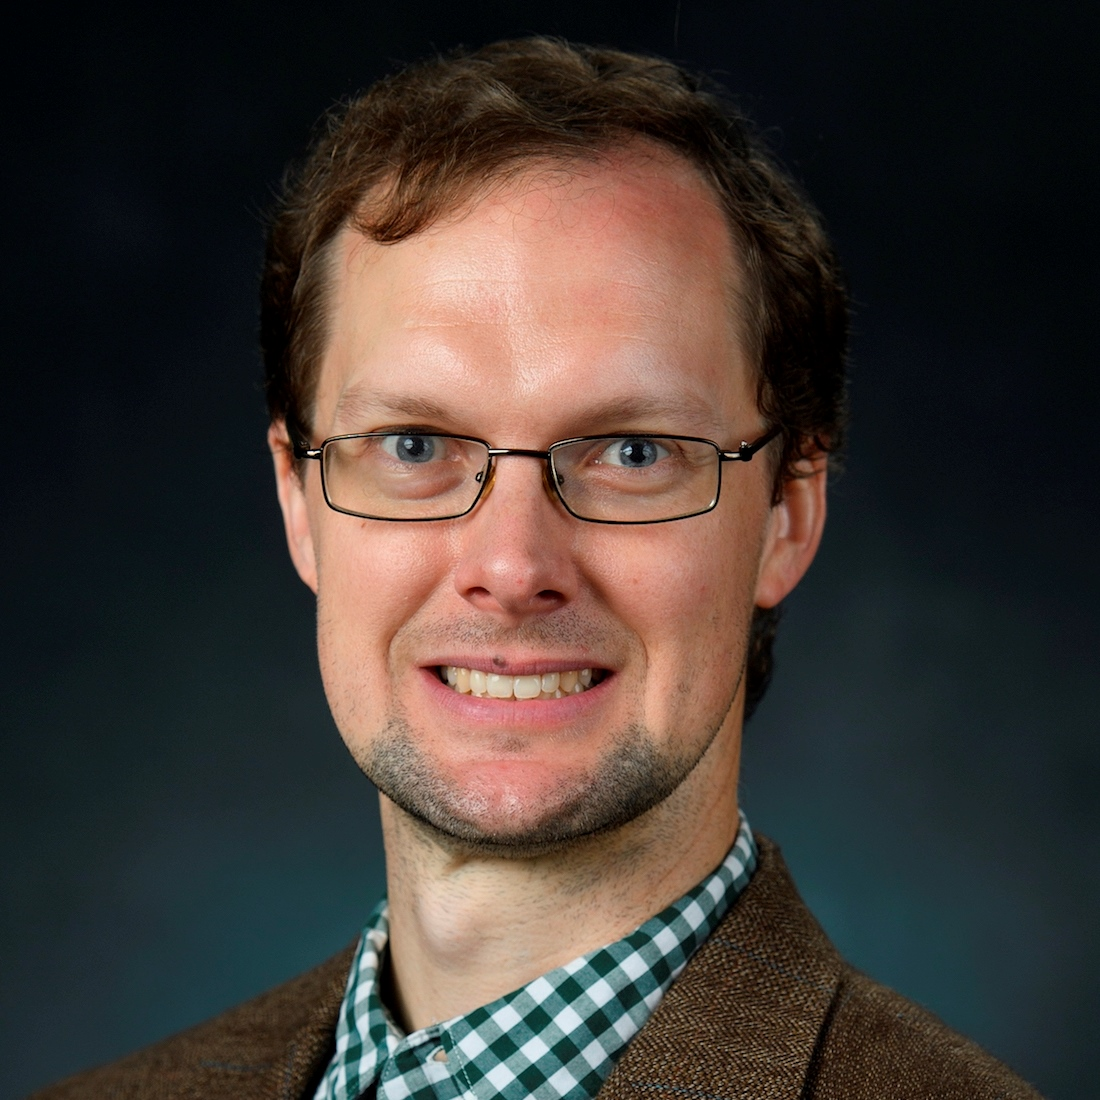 Ryan Fortenberry, Assistant Professor